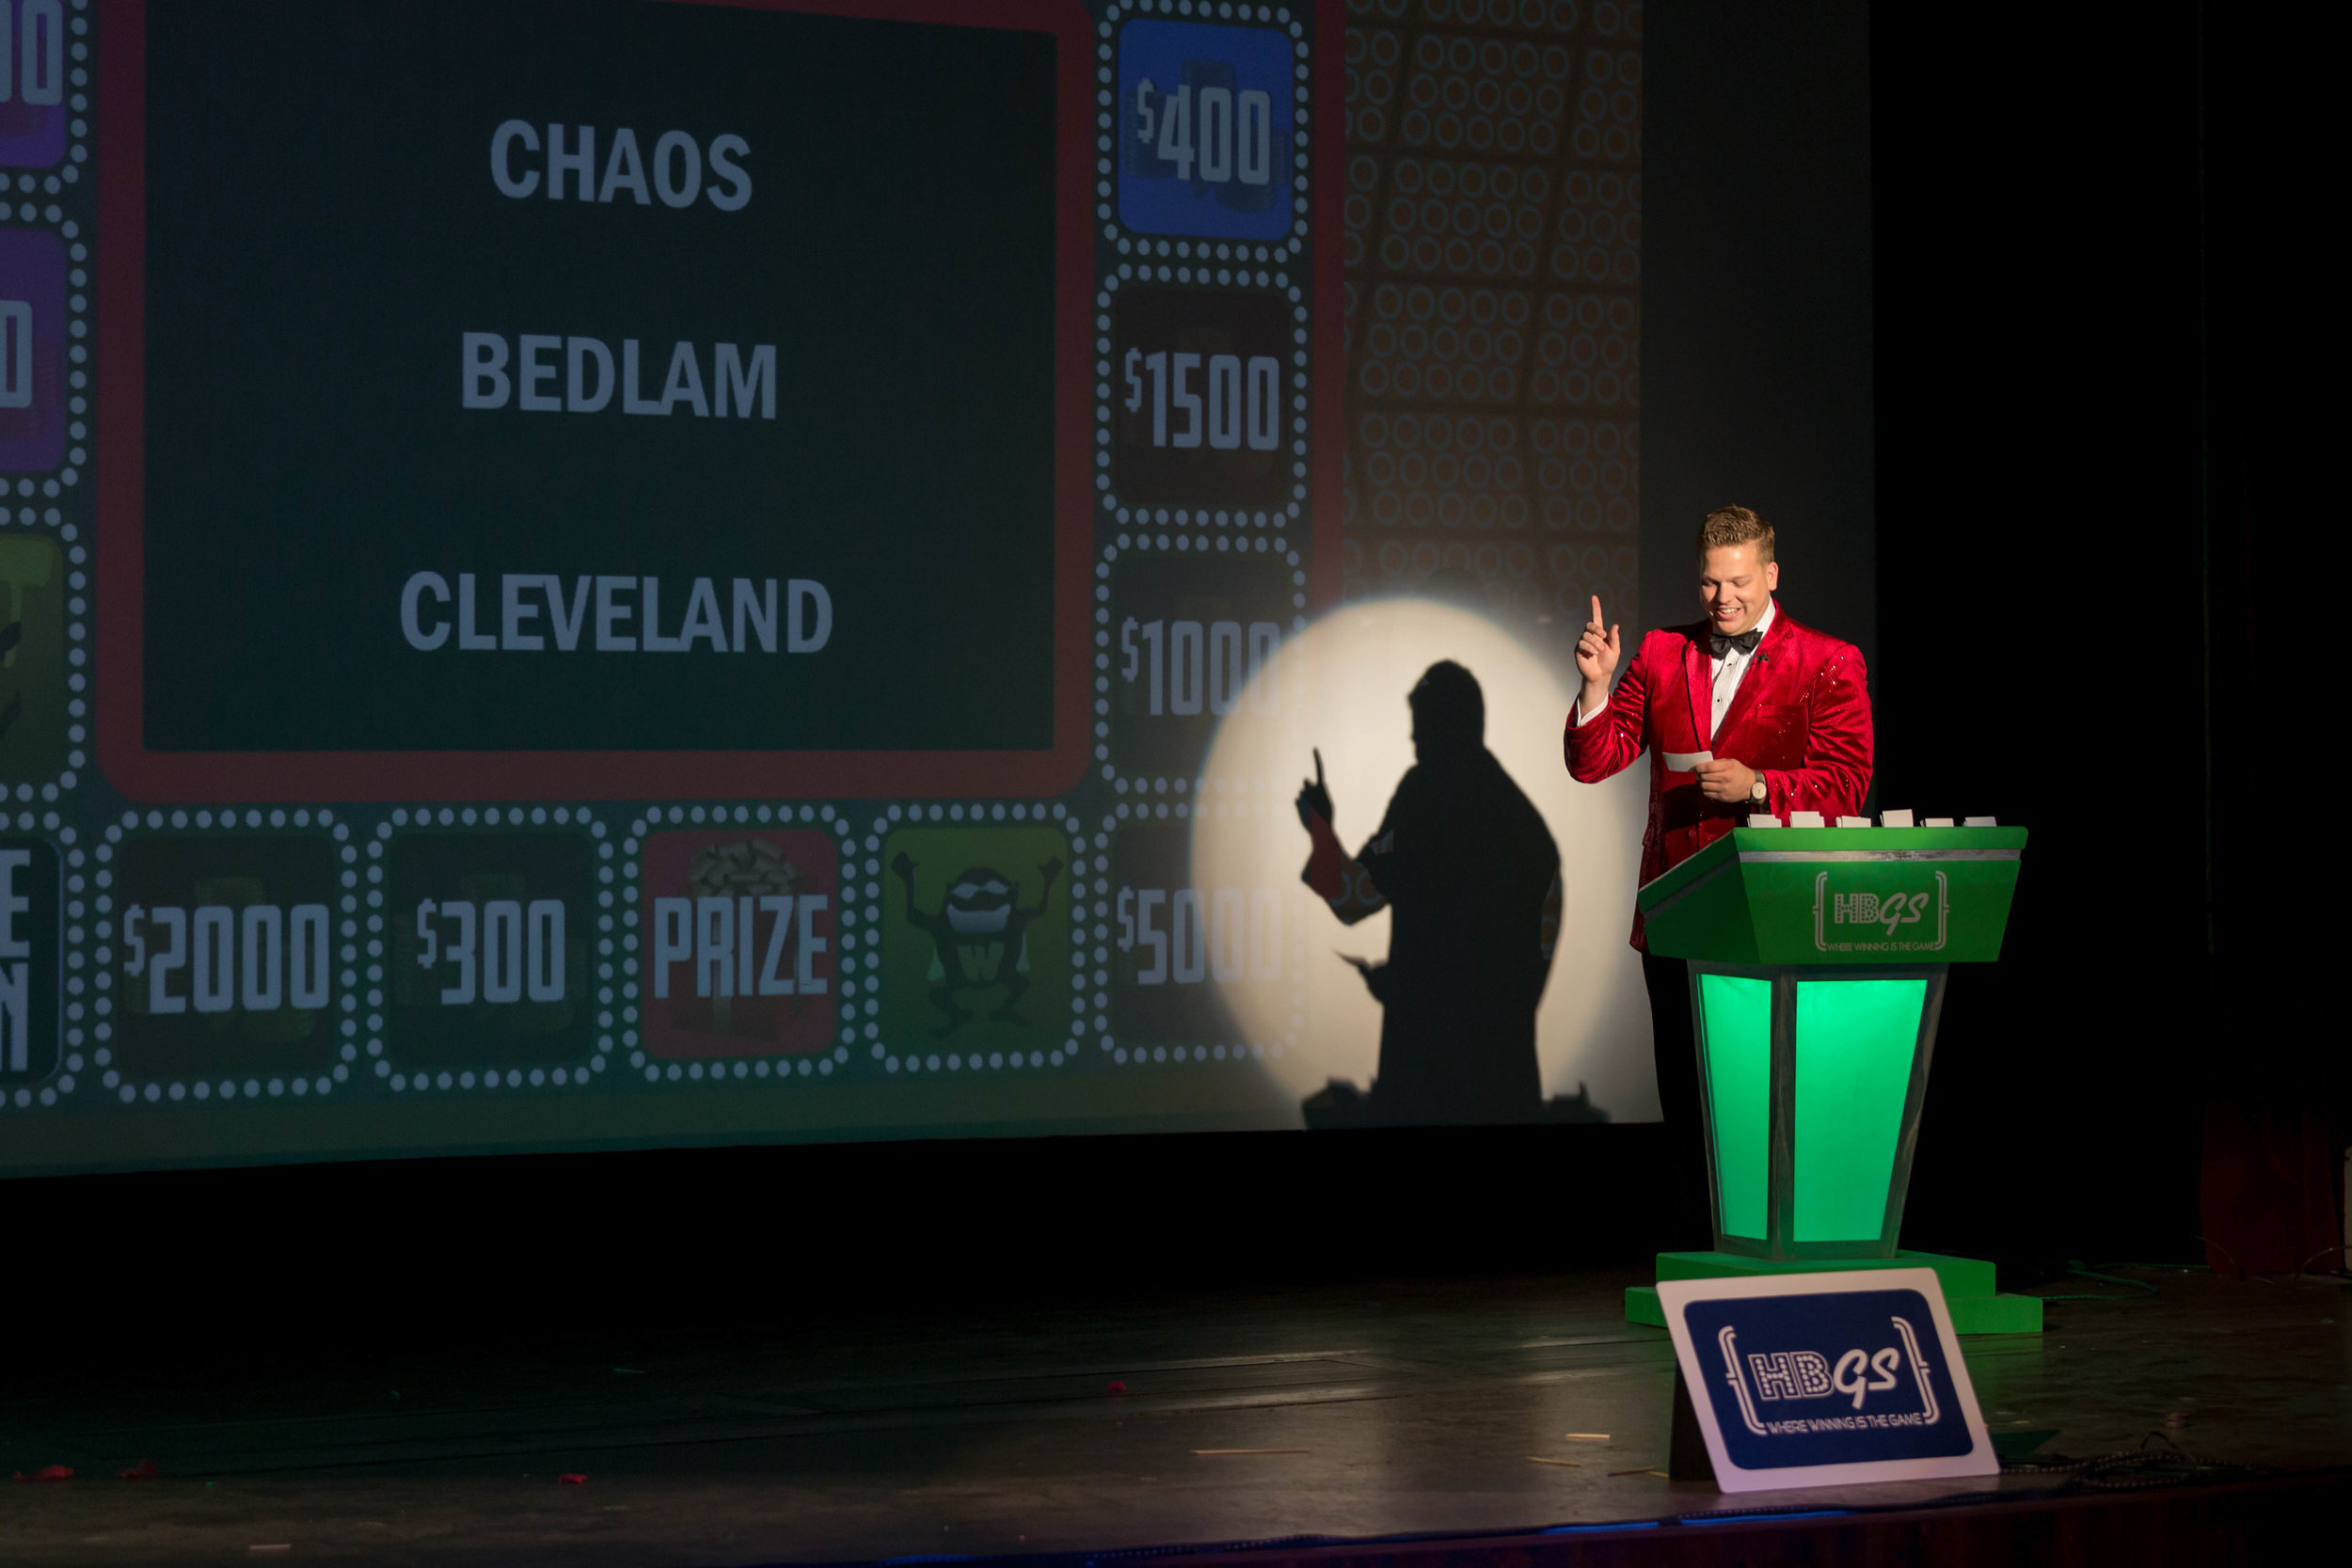 Host, Clark Ramsey delivers a punchline at the expense of Cleveland.